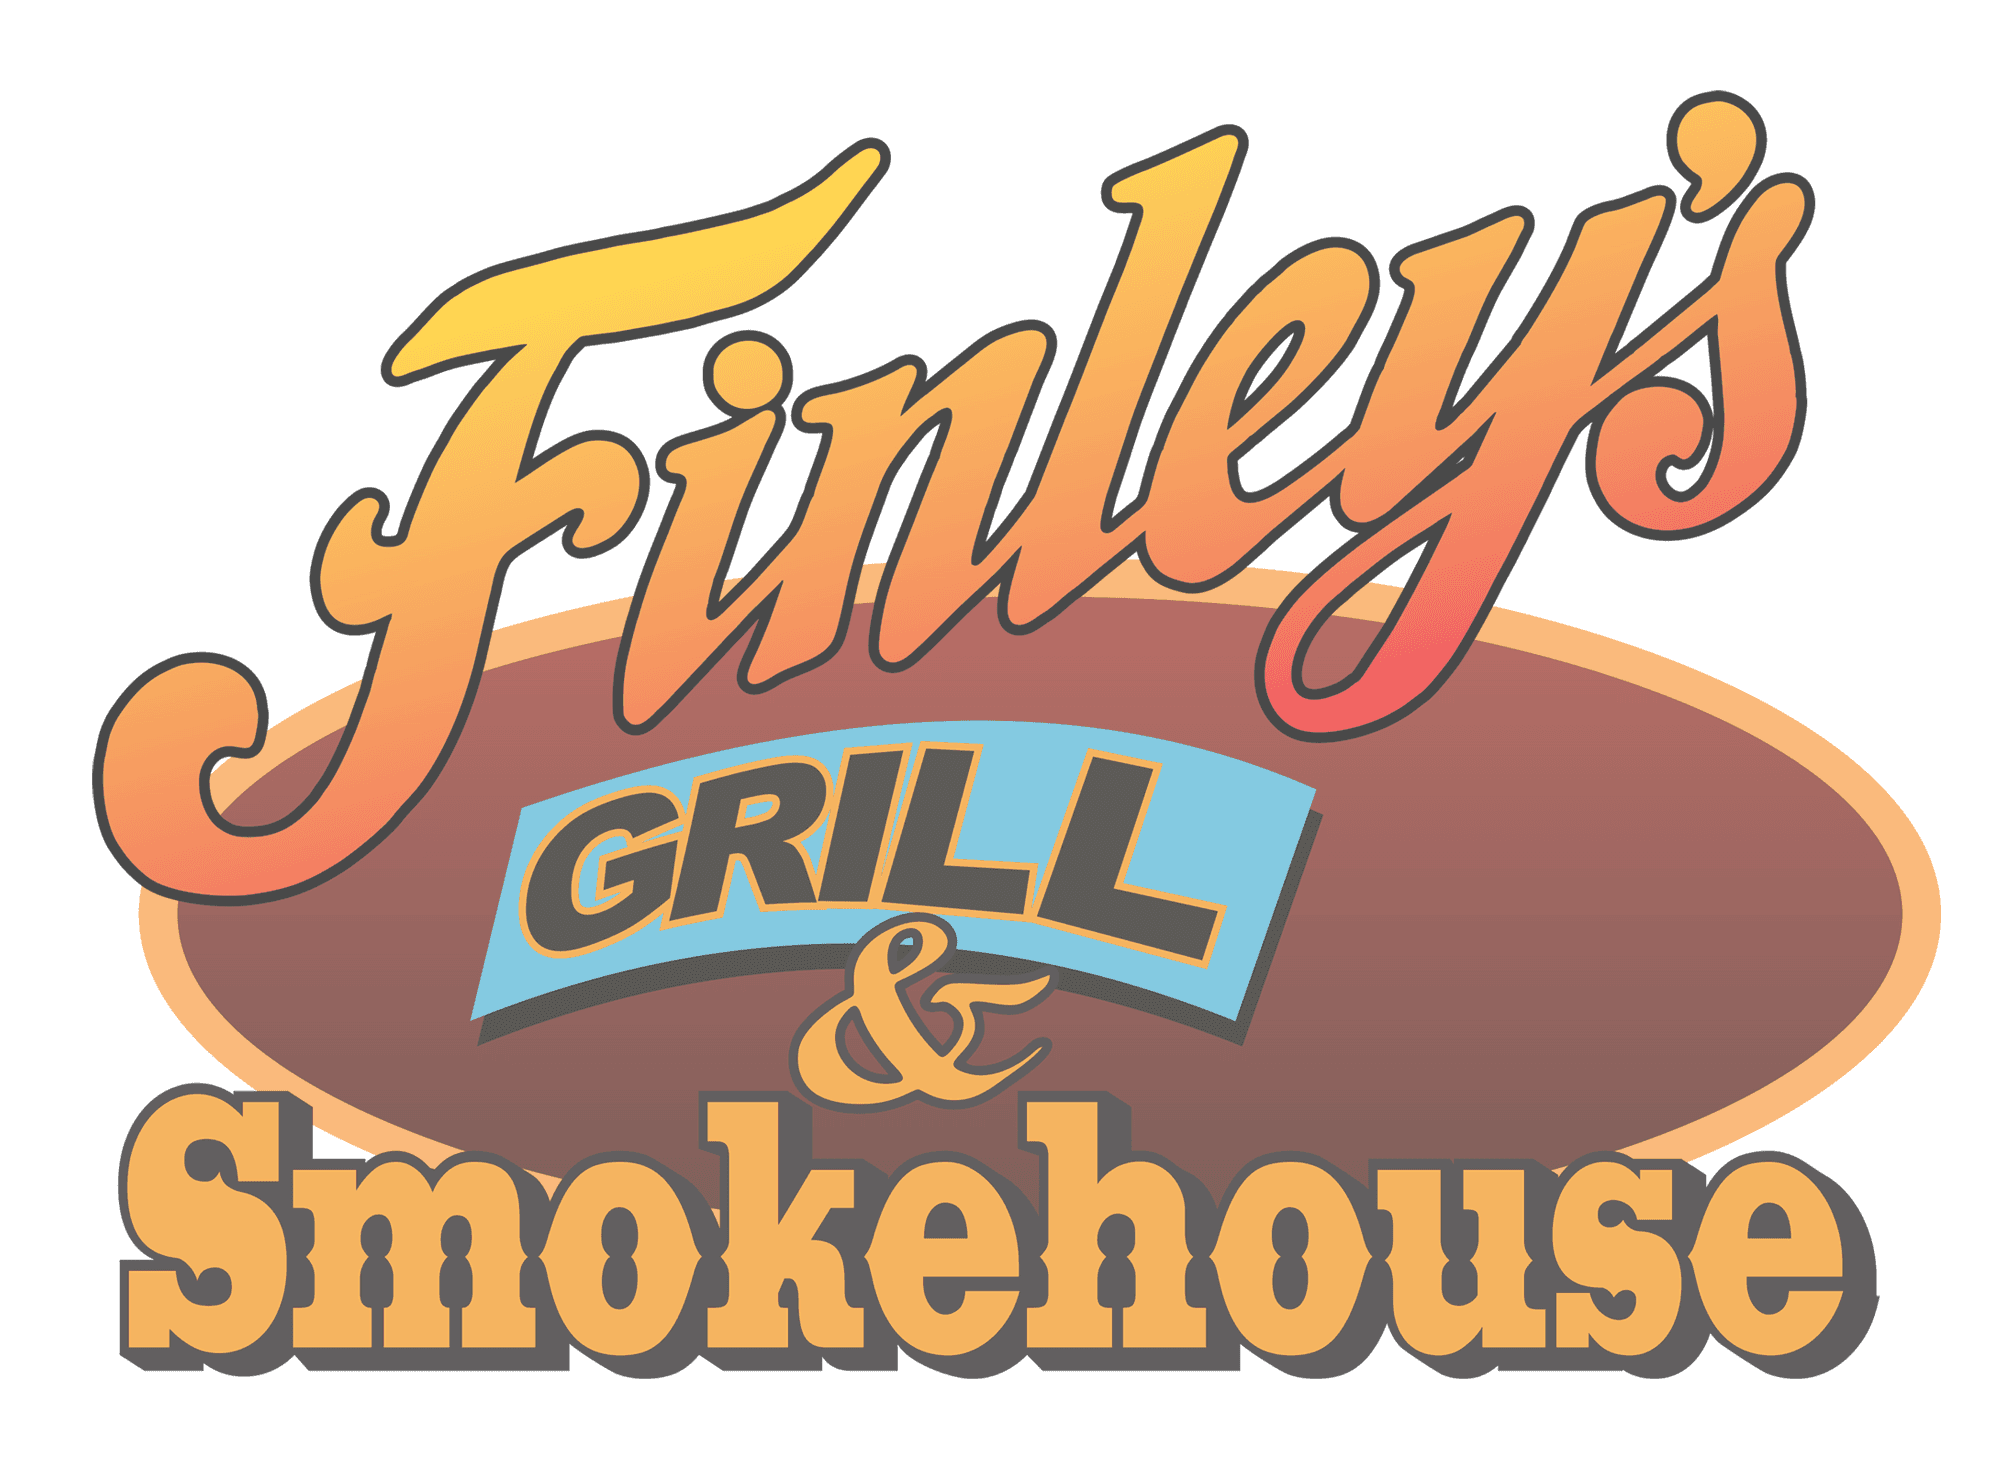 Hot dog and chips clipart graphic freeuse Finley's Grill & Smokehouse: Steak, Ribs, Burgers, BBQ & More ... graphic freeuse